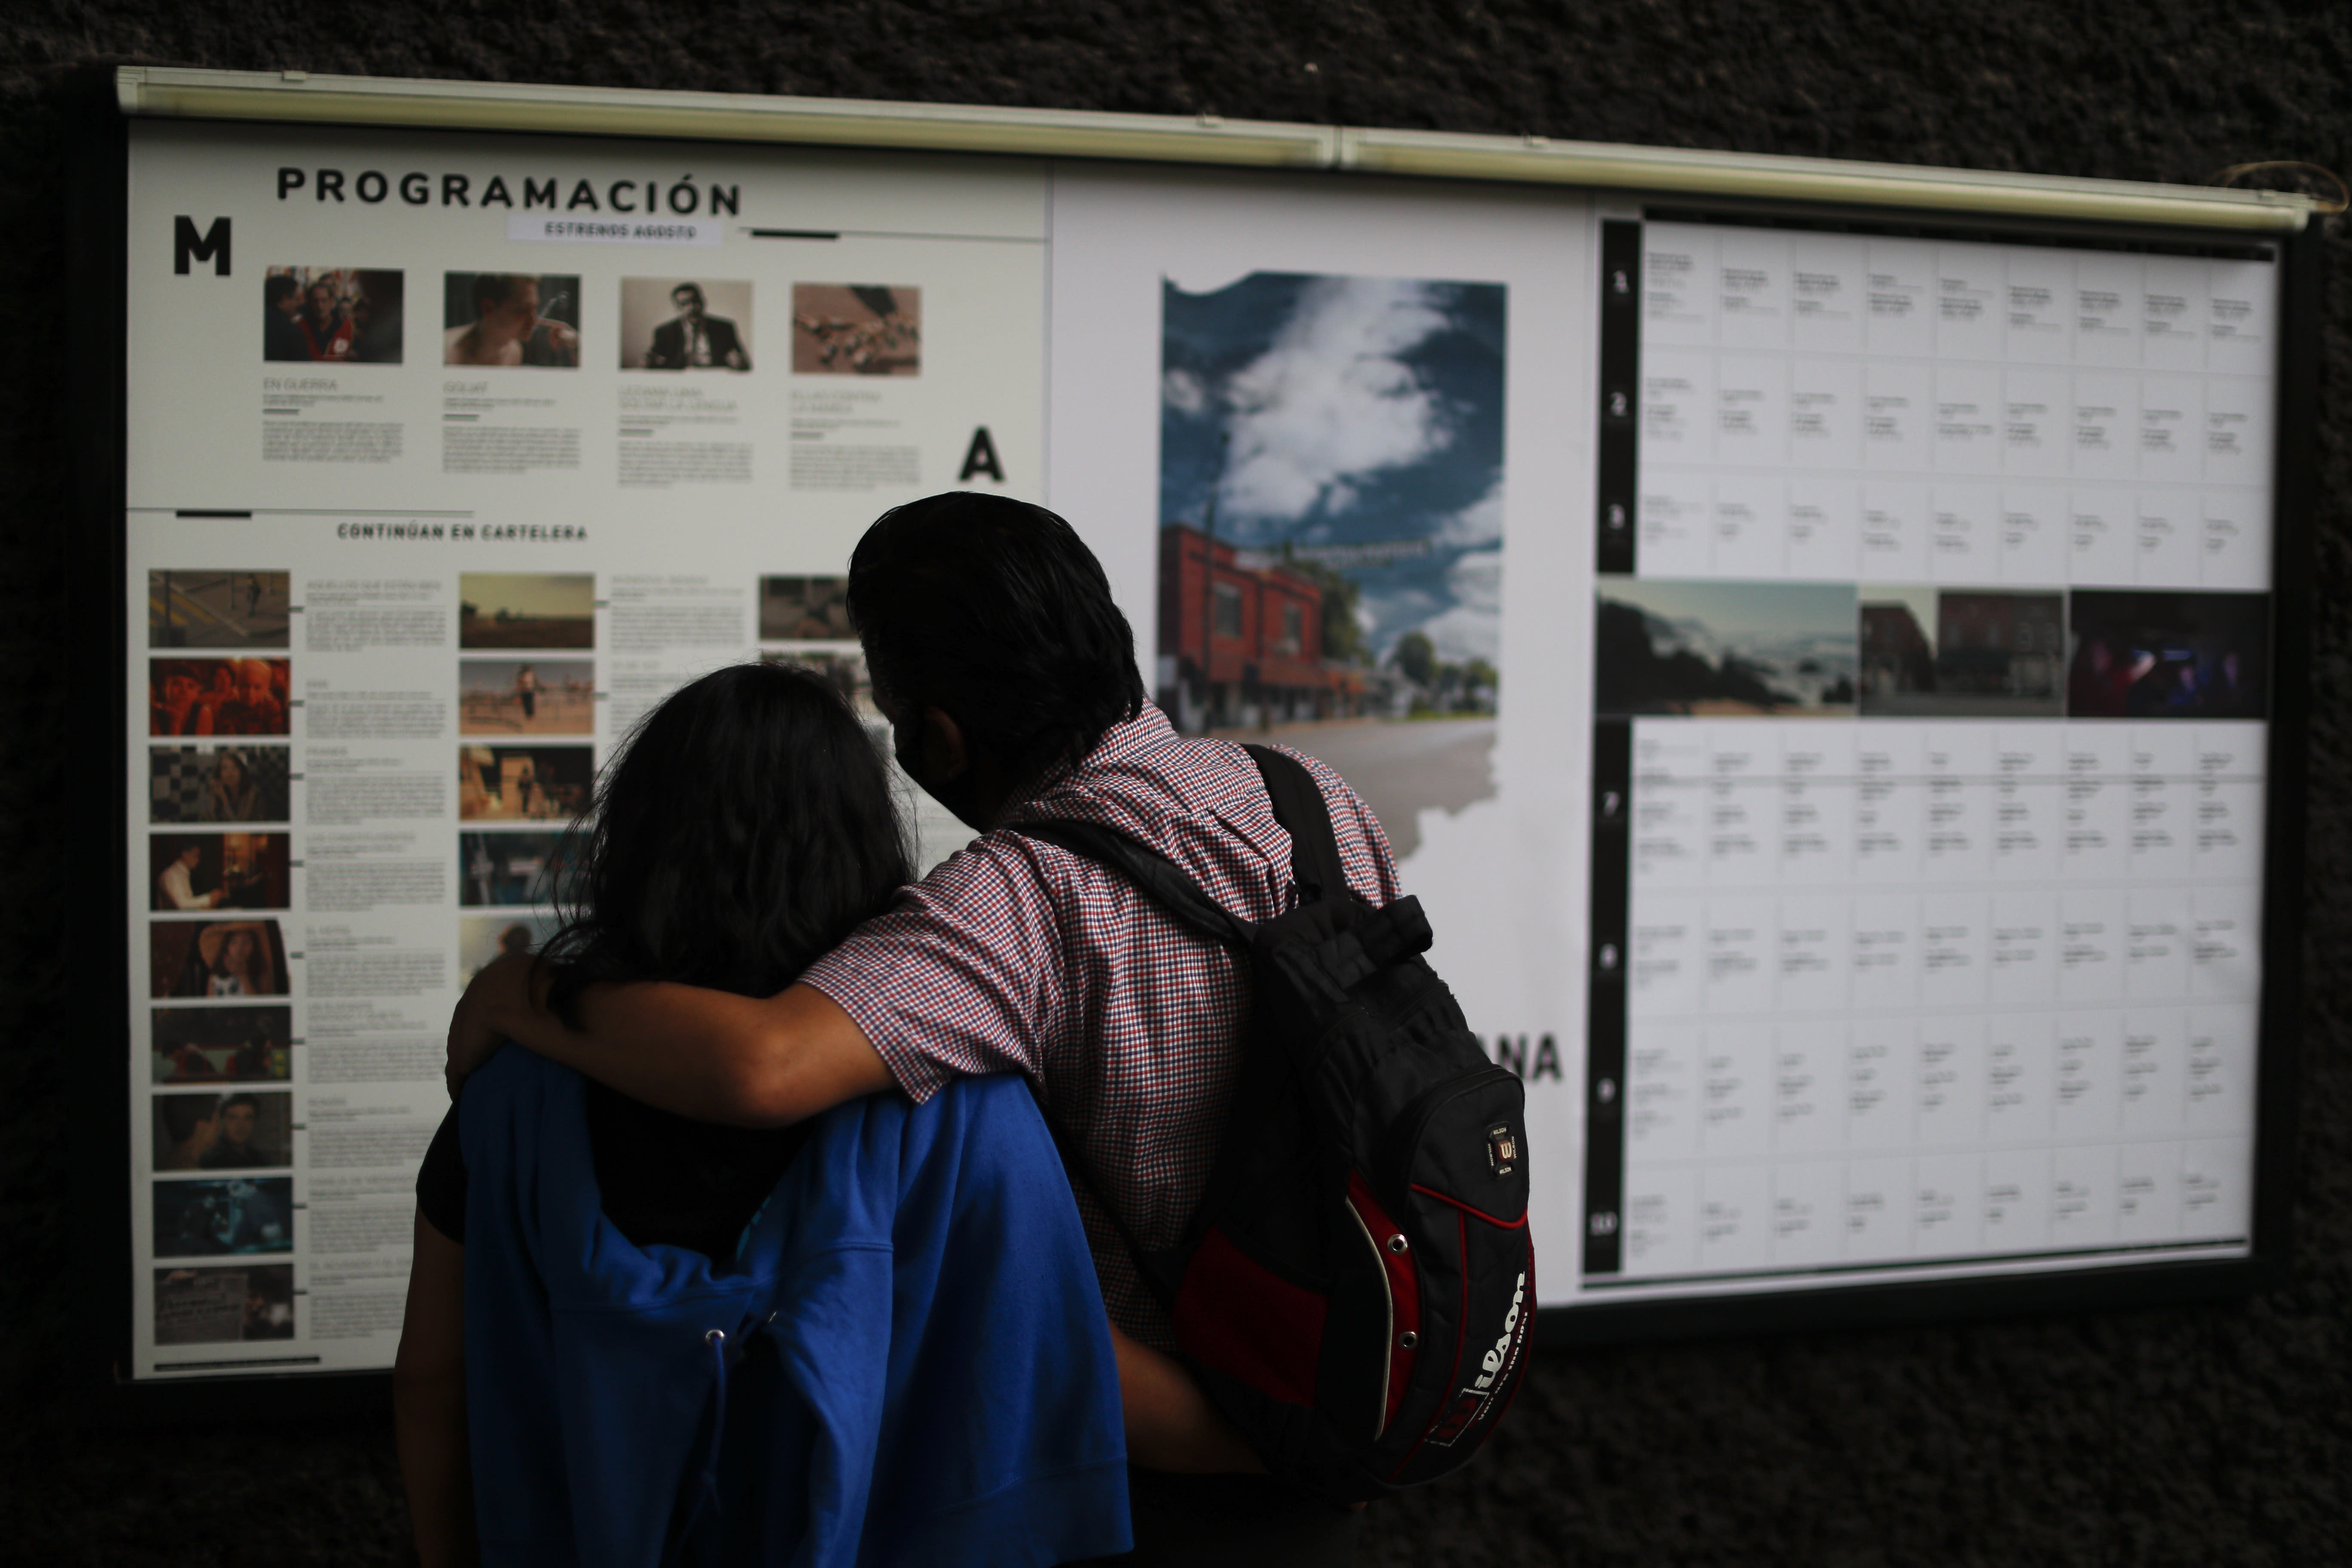 Filmgoers read listings for movies to be screened at the Cineteca Nacional, Mexico's film archive, in Mexico City, Wednesday, Aug. 12, 2020. After being closed for nearly five months amidst the ongoing coronavirus pandemic, movie theaters in the capital reopened Wednesday at 30% capacity. (AP Photo/Rebecca Blackwell)